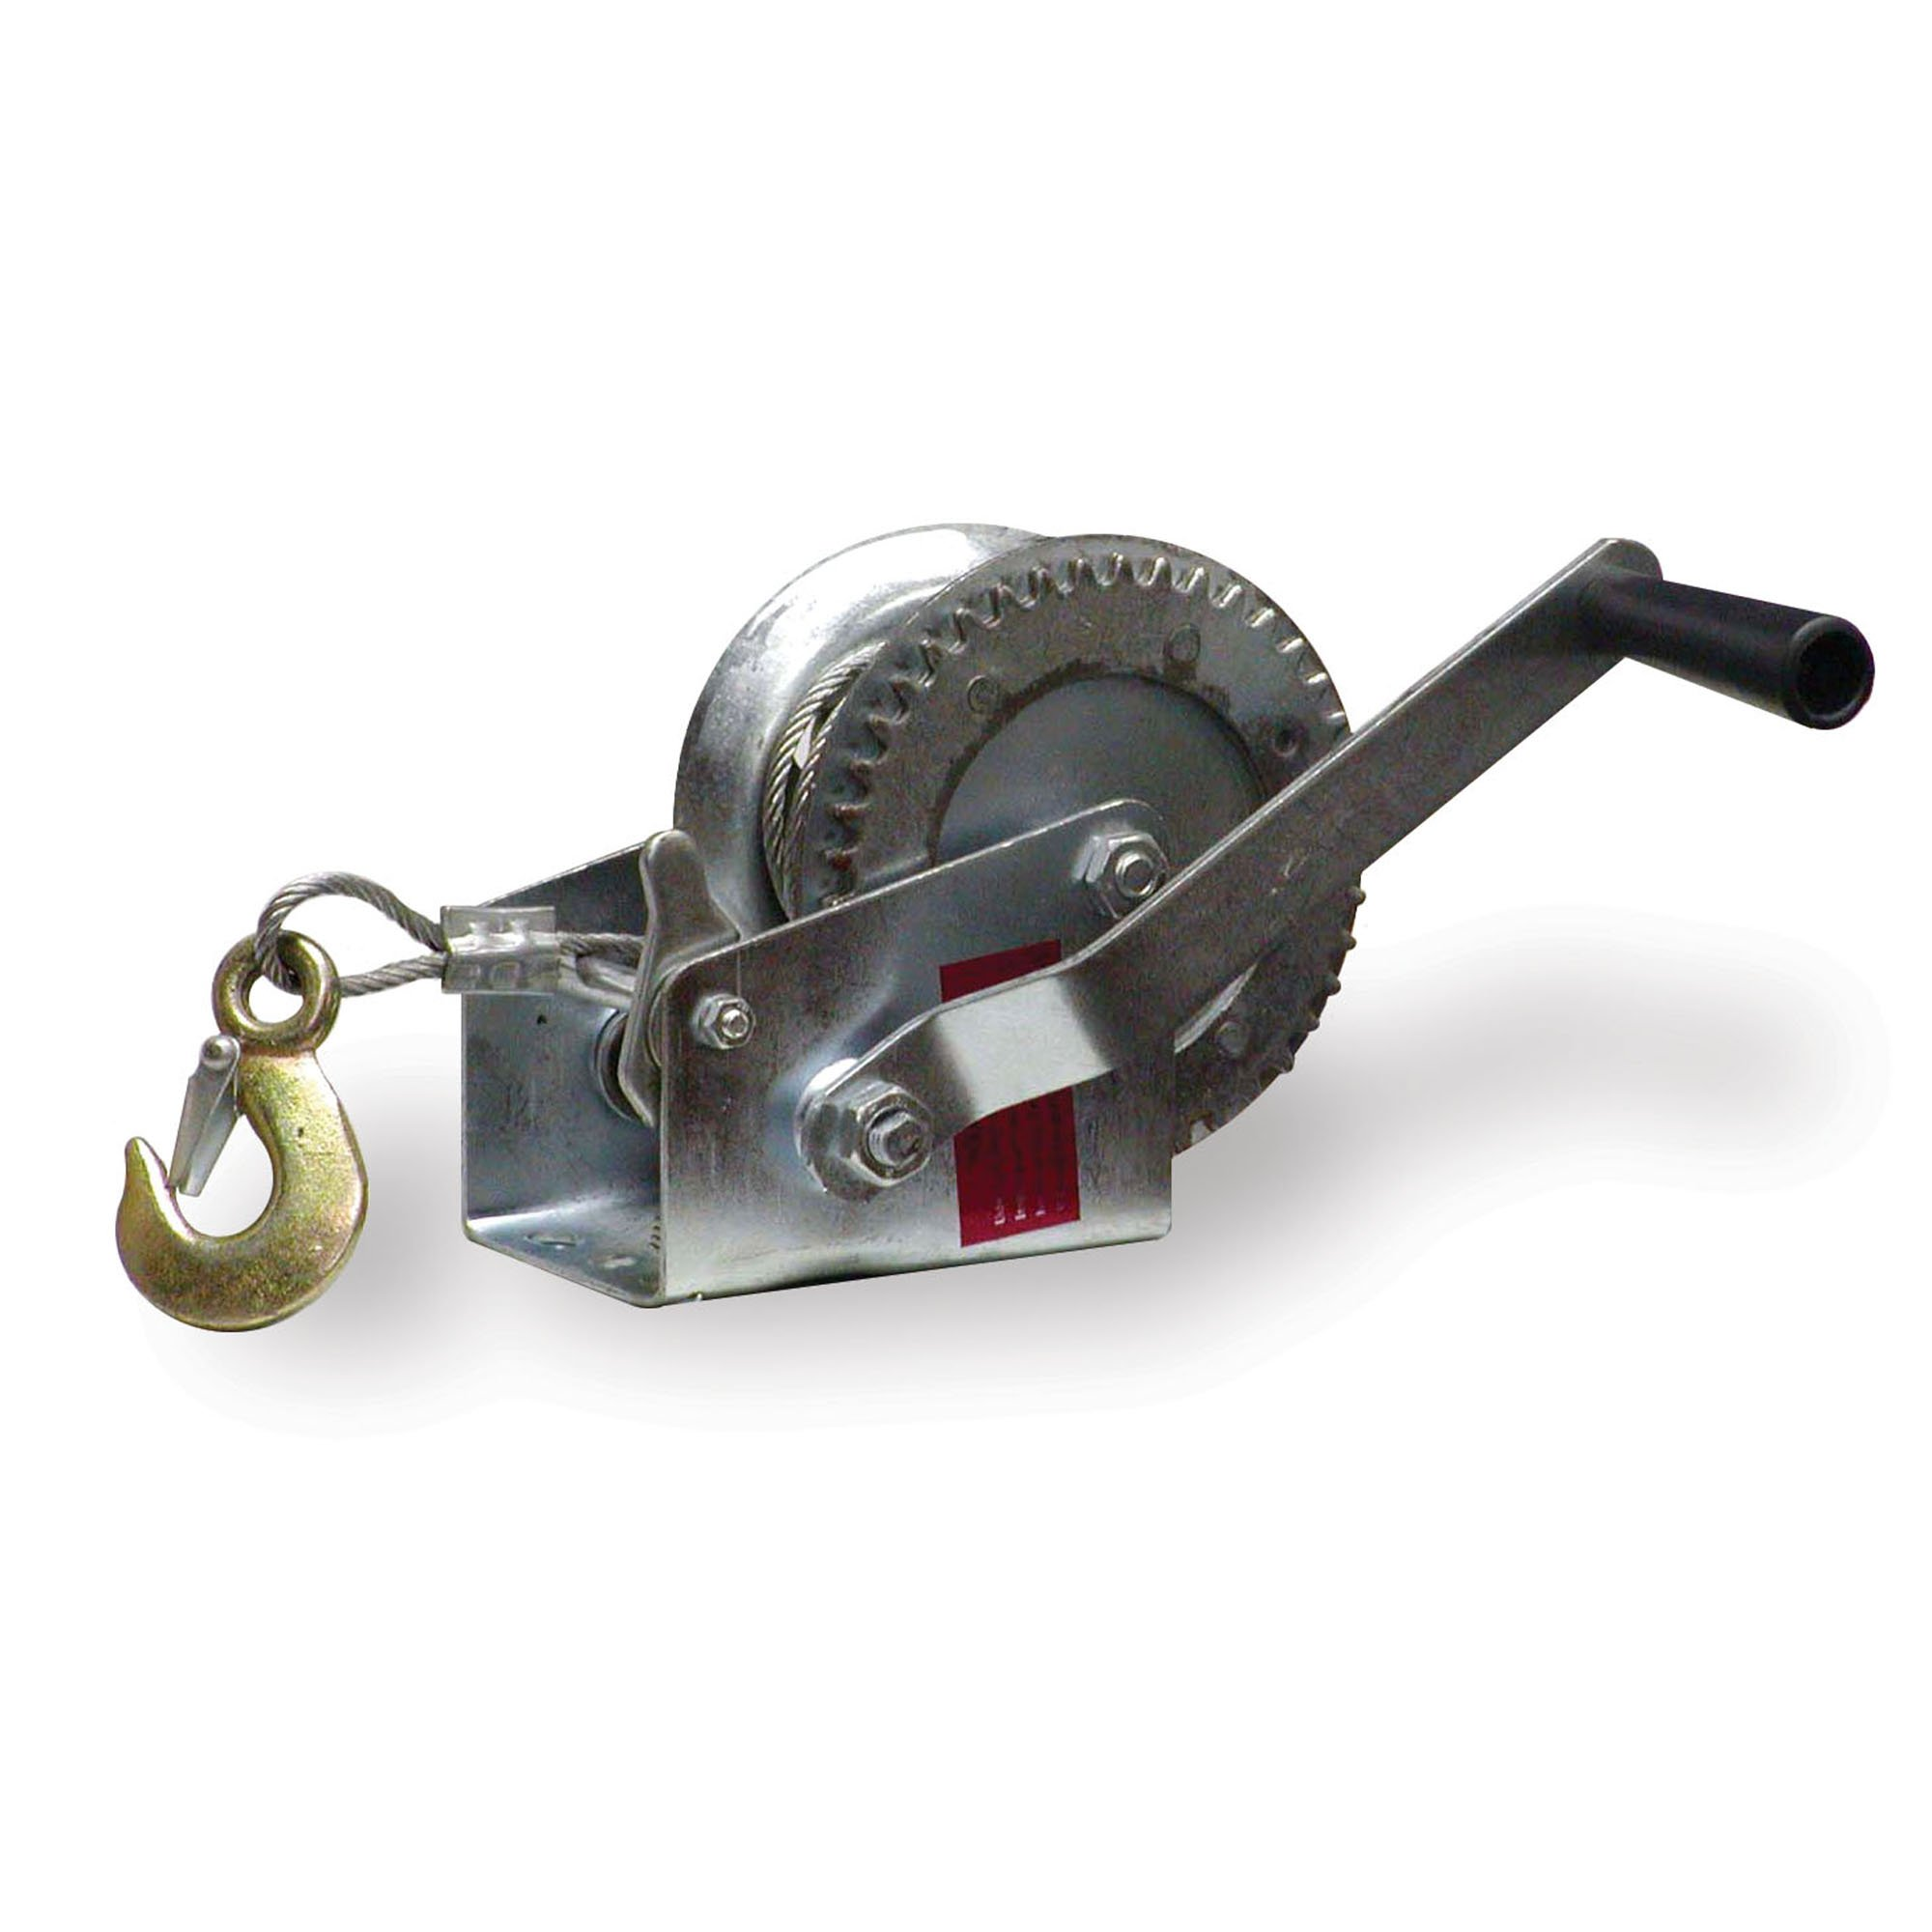 Sportsman Series W1000 1000 lb 1/4'' x 32' Steel Cable Hand Winch